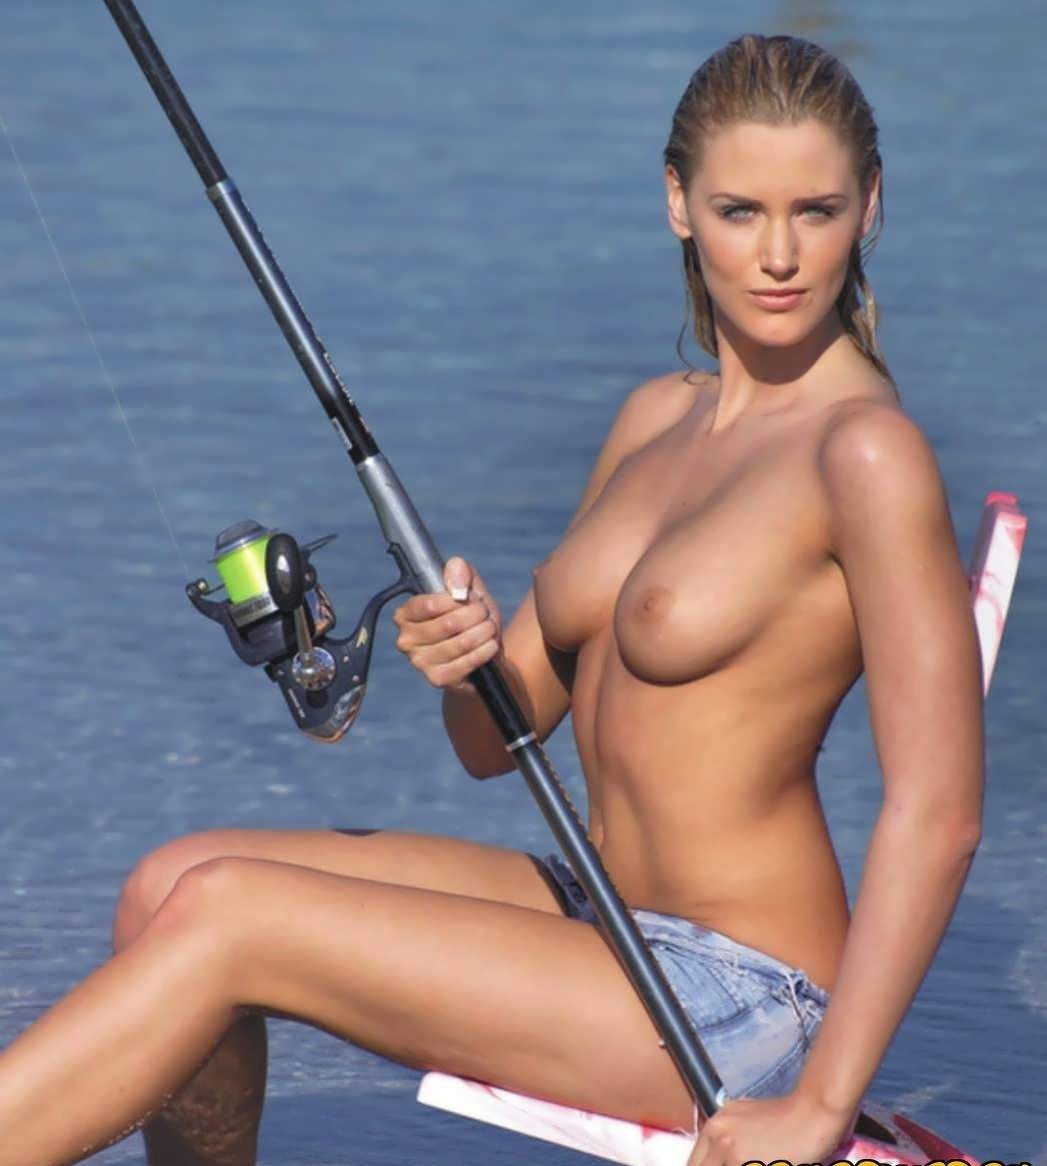 nude-pics-of-chicks-fishing